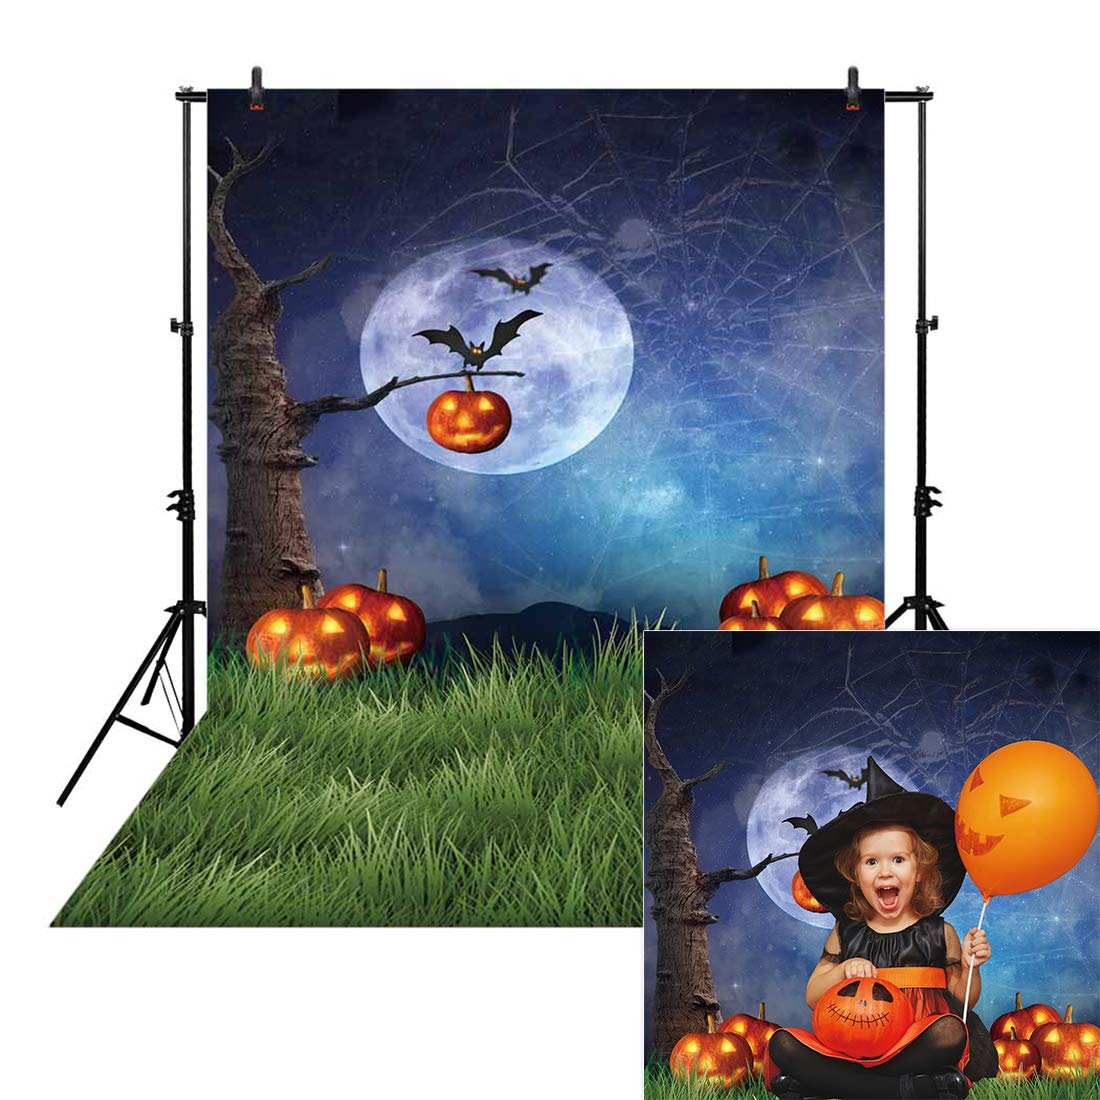 Allenjoy 5x7ft Night Halloween Themed Backdrop for Photography Fall Pumpkin Green Grass Children Newborn Portrait Background Party Birthday Banner Baby Shower Decorations Decor Photo Booth Shoot Props by Allenjoy